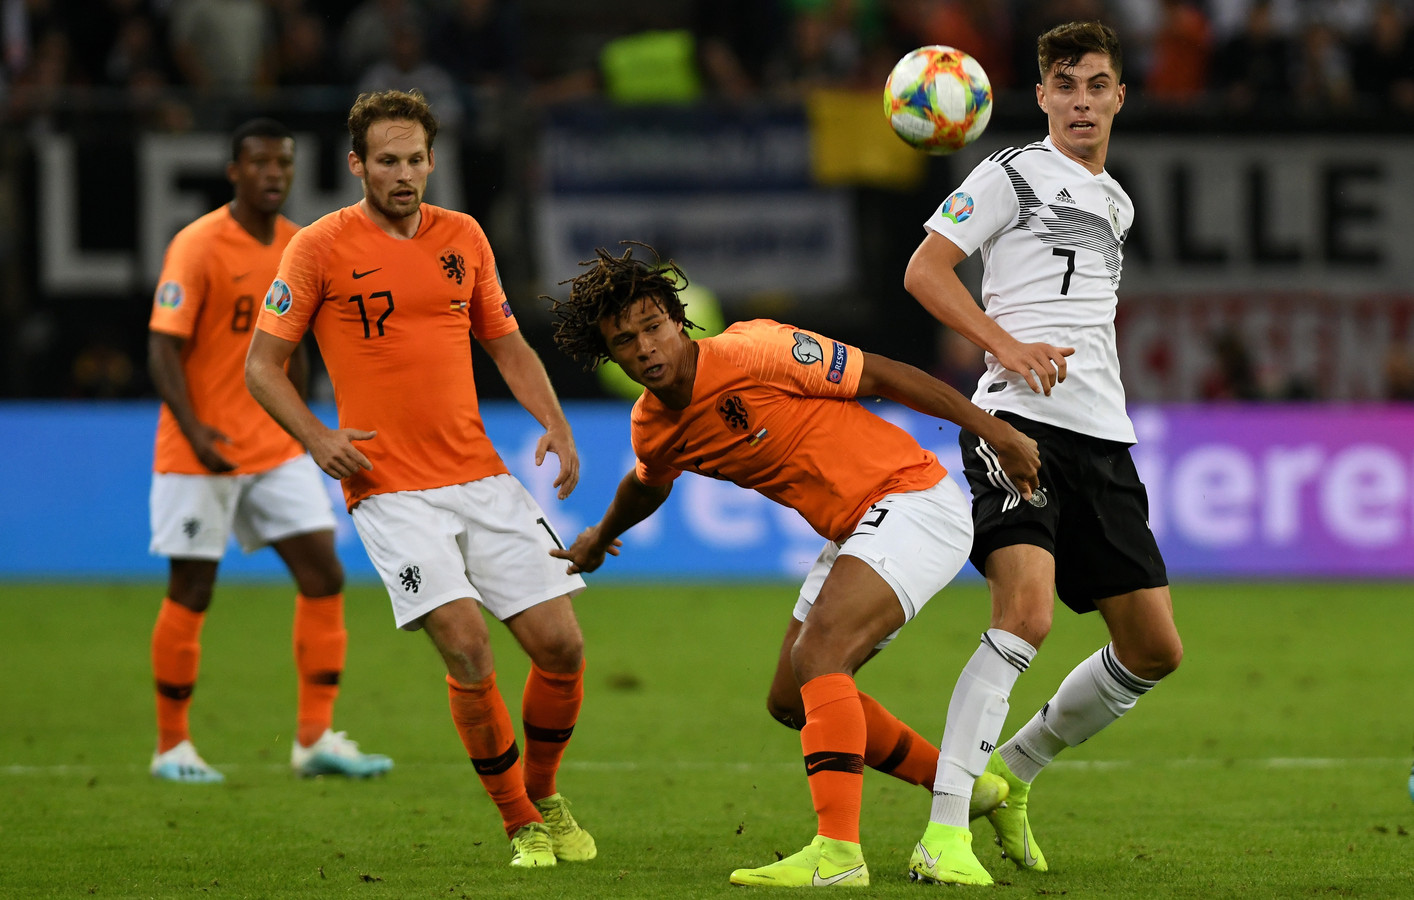 Invaller Kai Havertz (r) in duel met Nathan Aké.